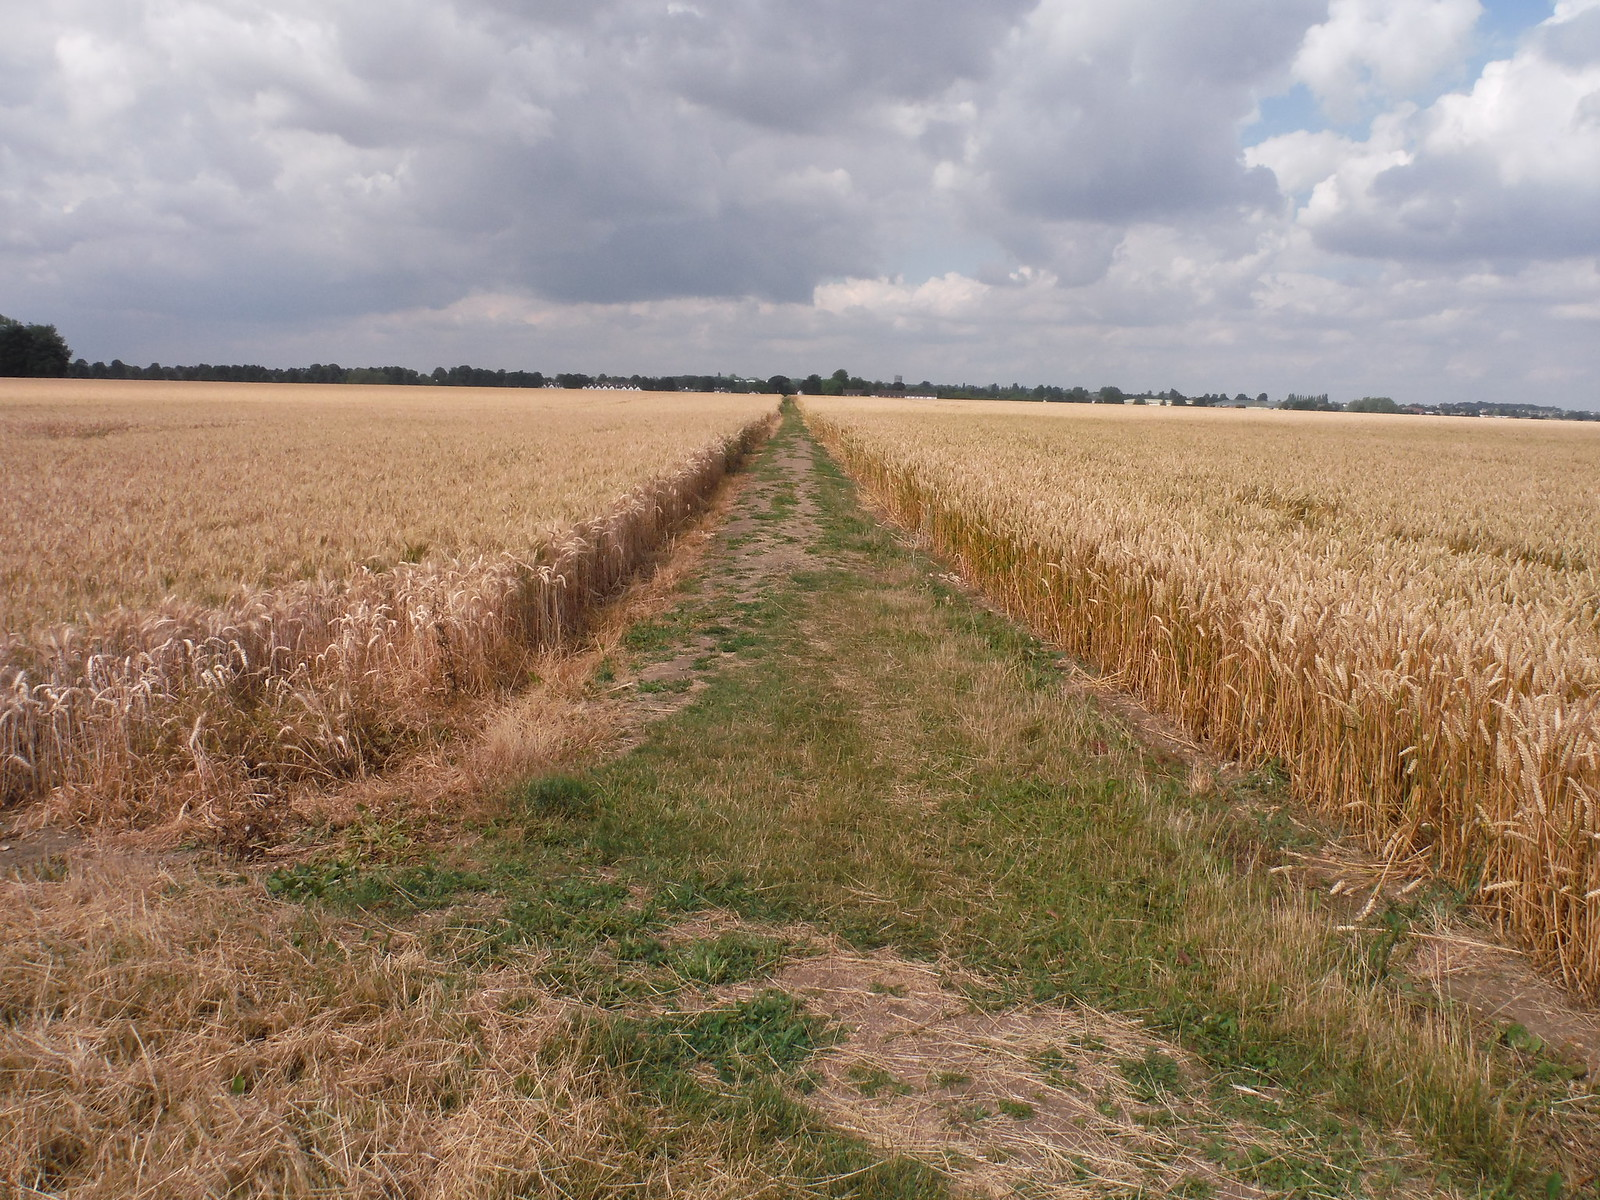 Usually well-cleared path through arable fields SWC Walk 233 - Arlesey to Letchworth Garden City